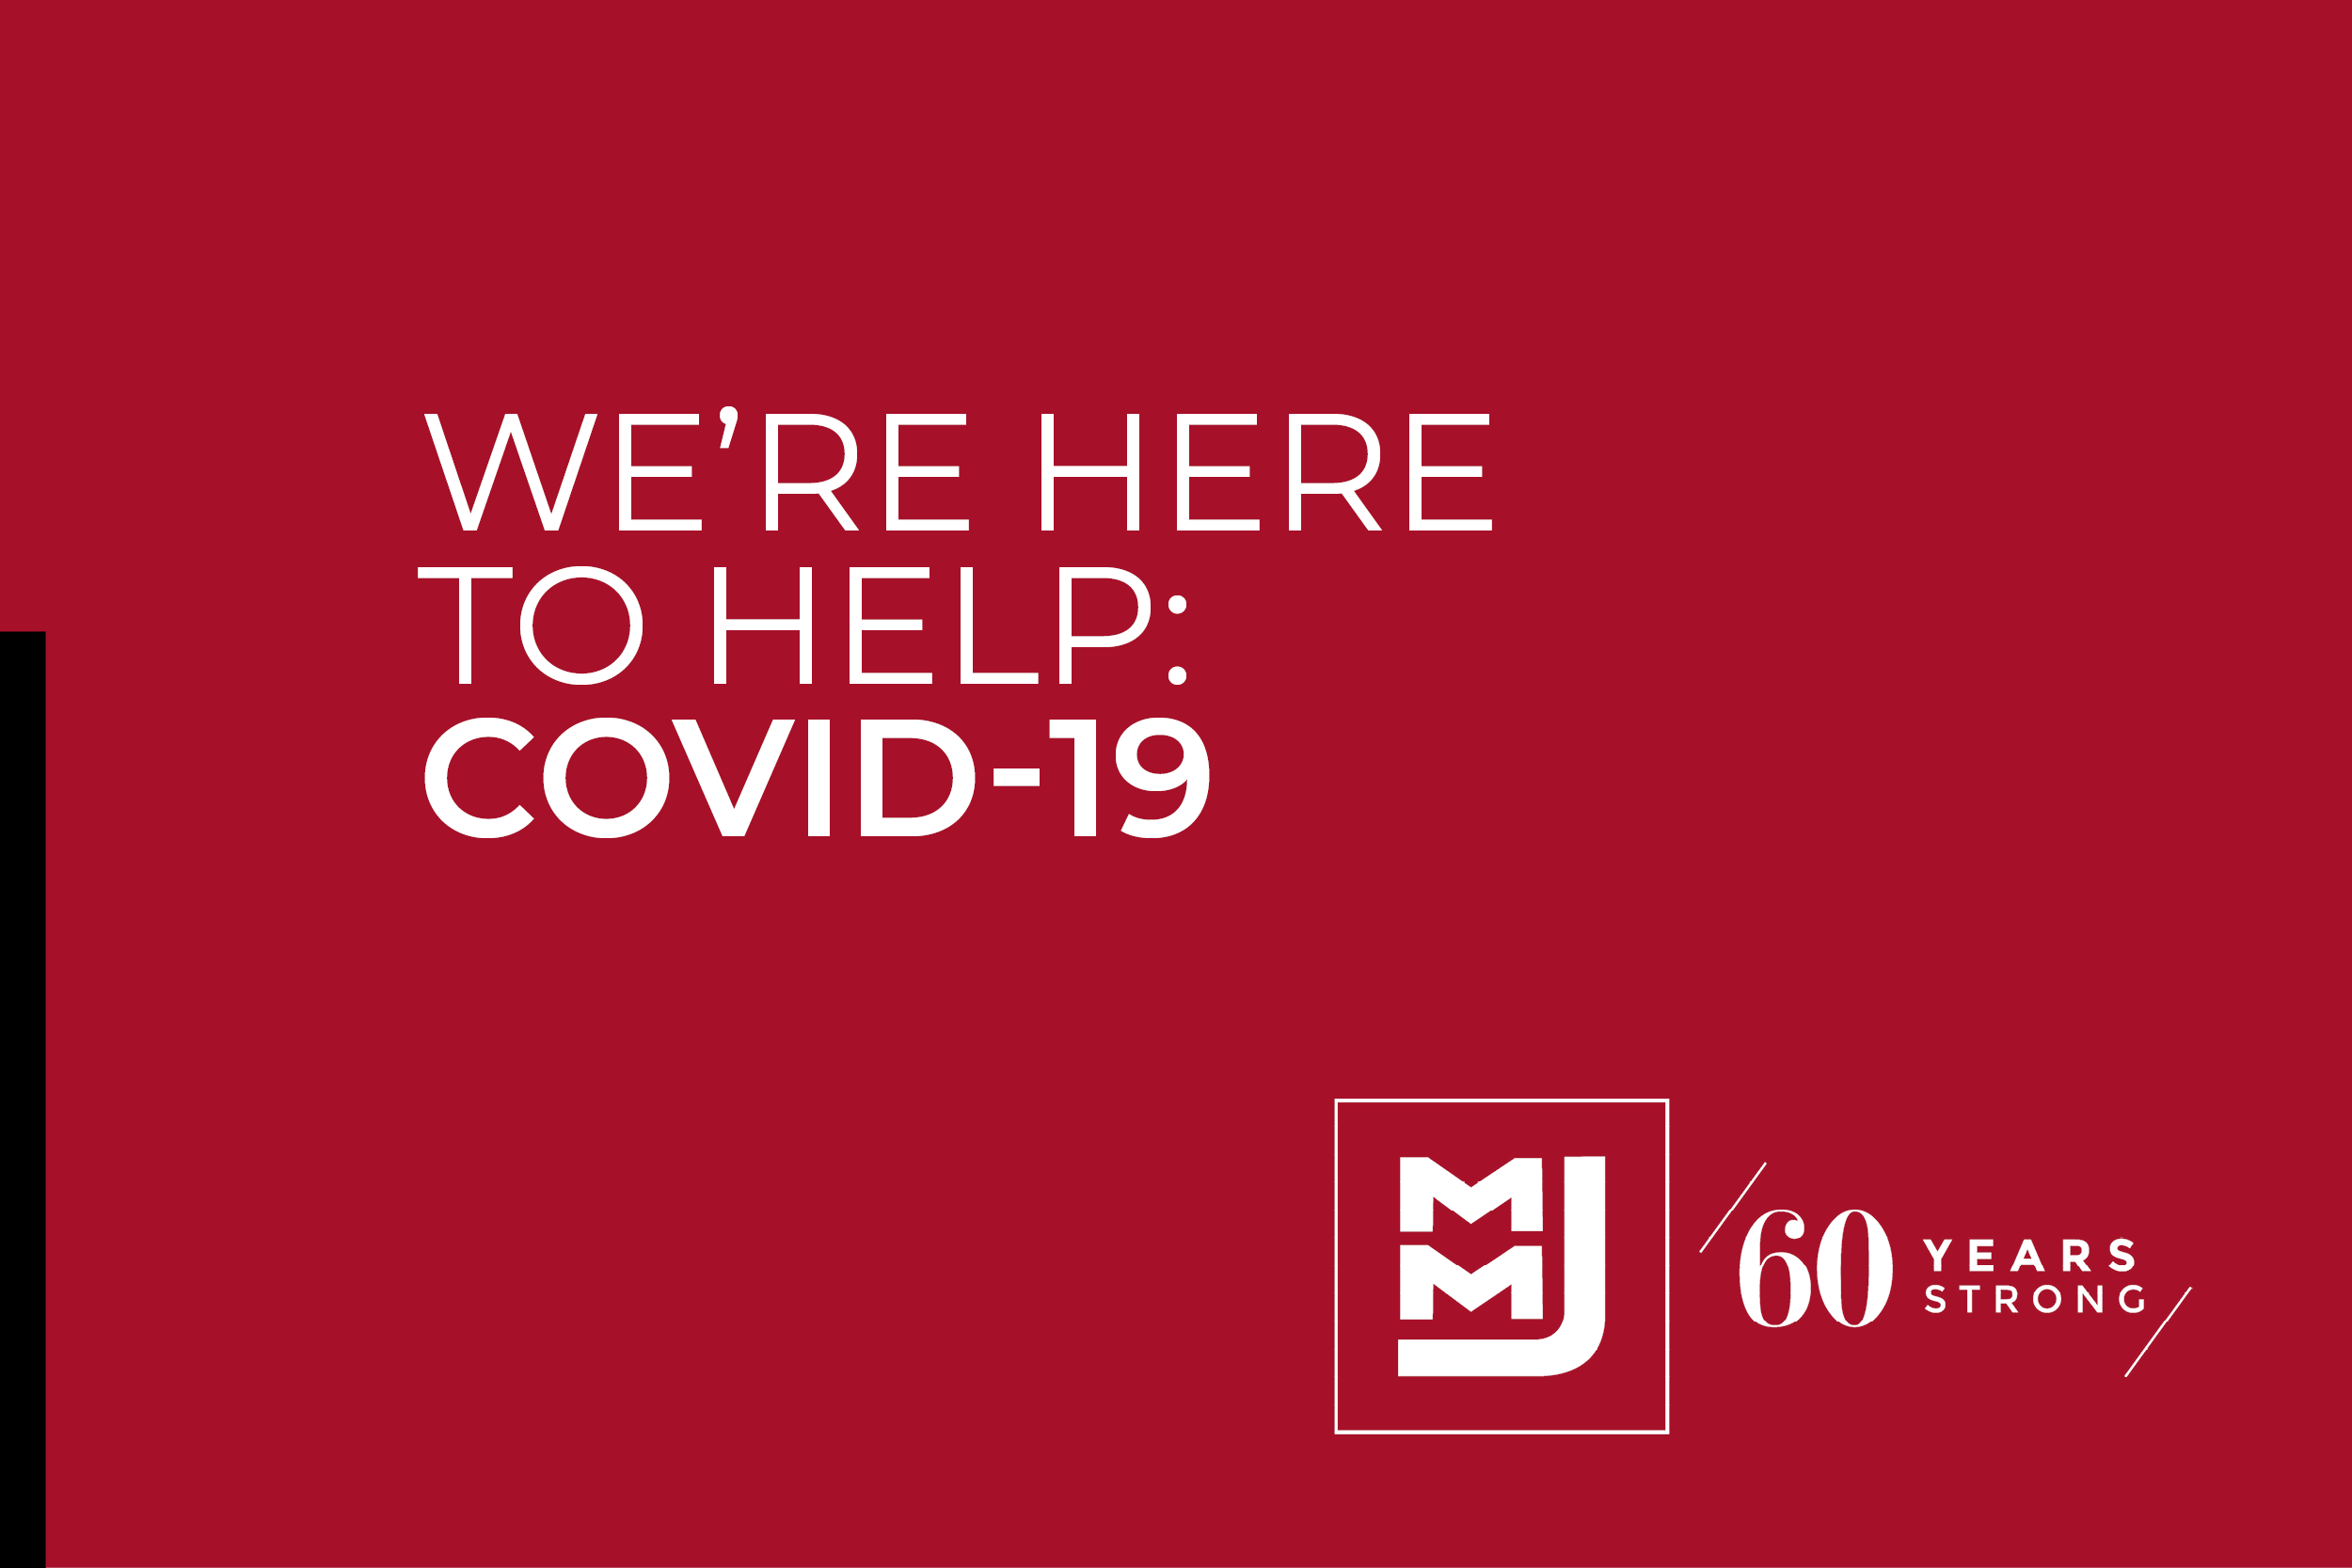 Partnering with you during COVID-19